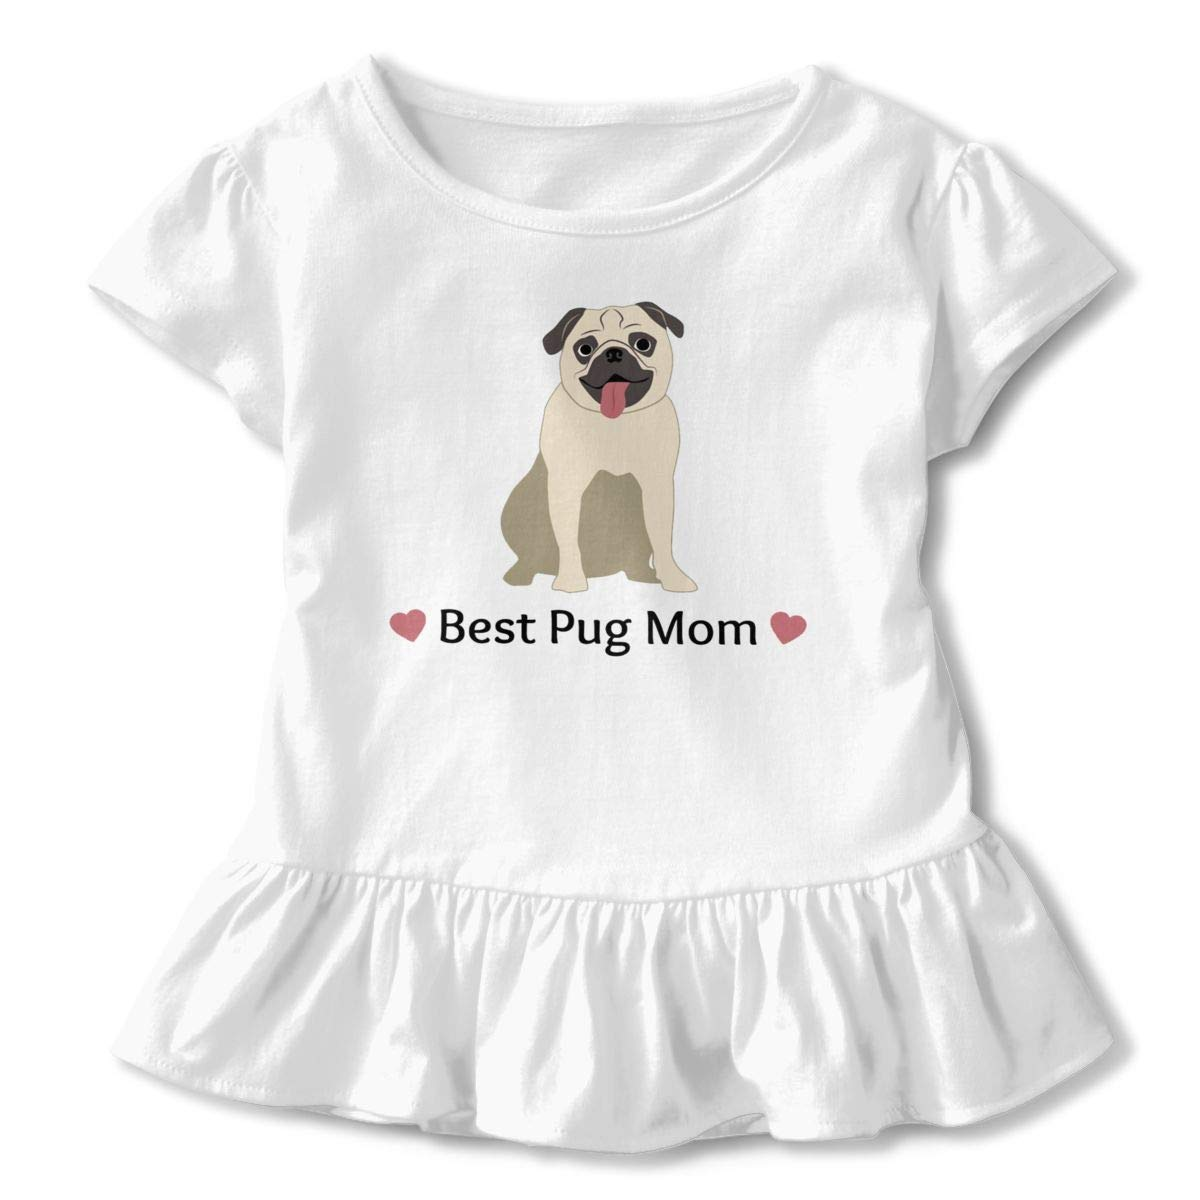 JVNSS Best Pug Mom T-Shirt Baby Girl Flounced T Shirts Soft Cotton Tops for 2-6T Baby Girls